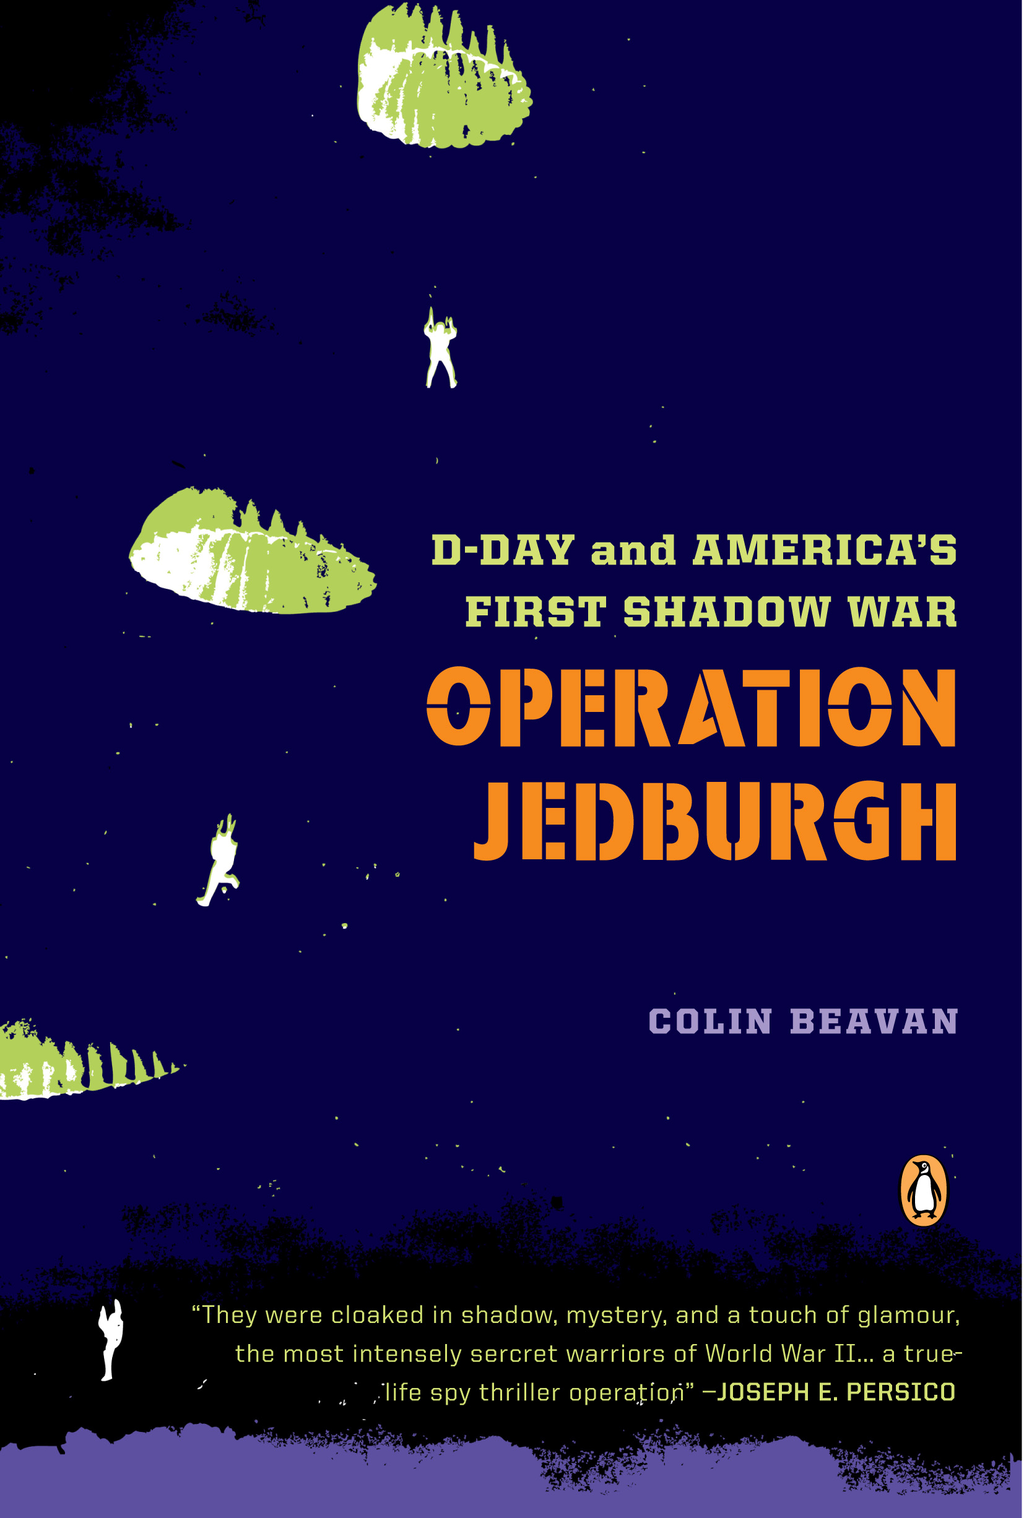 Operation Jedburgh By: COLIN BEAVAN